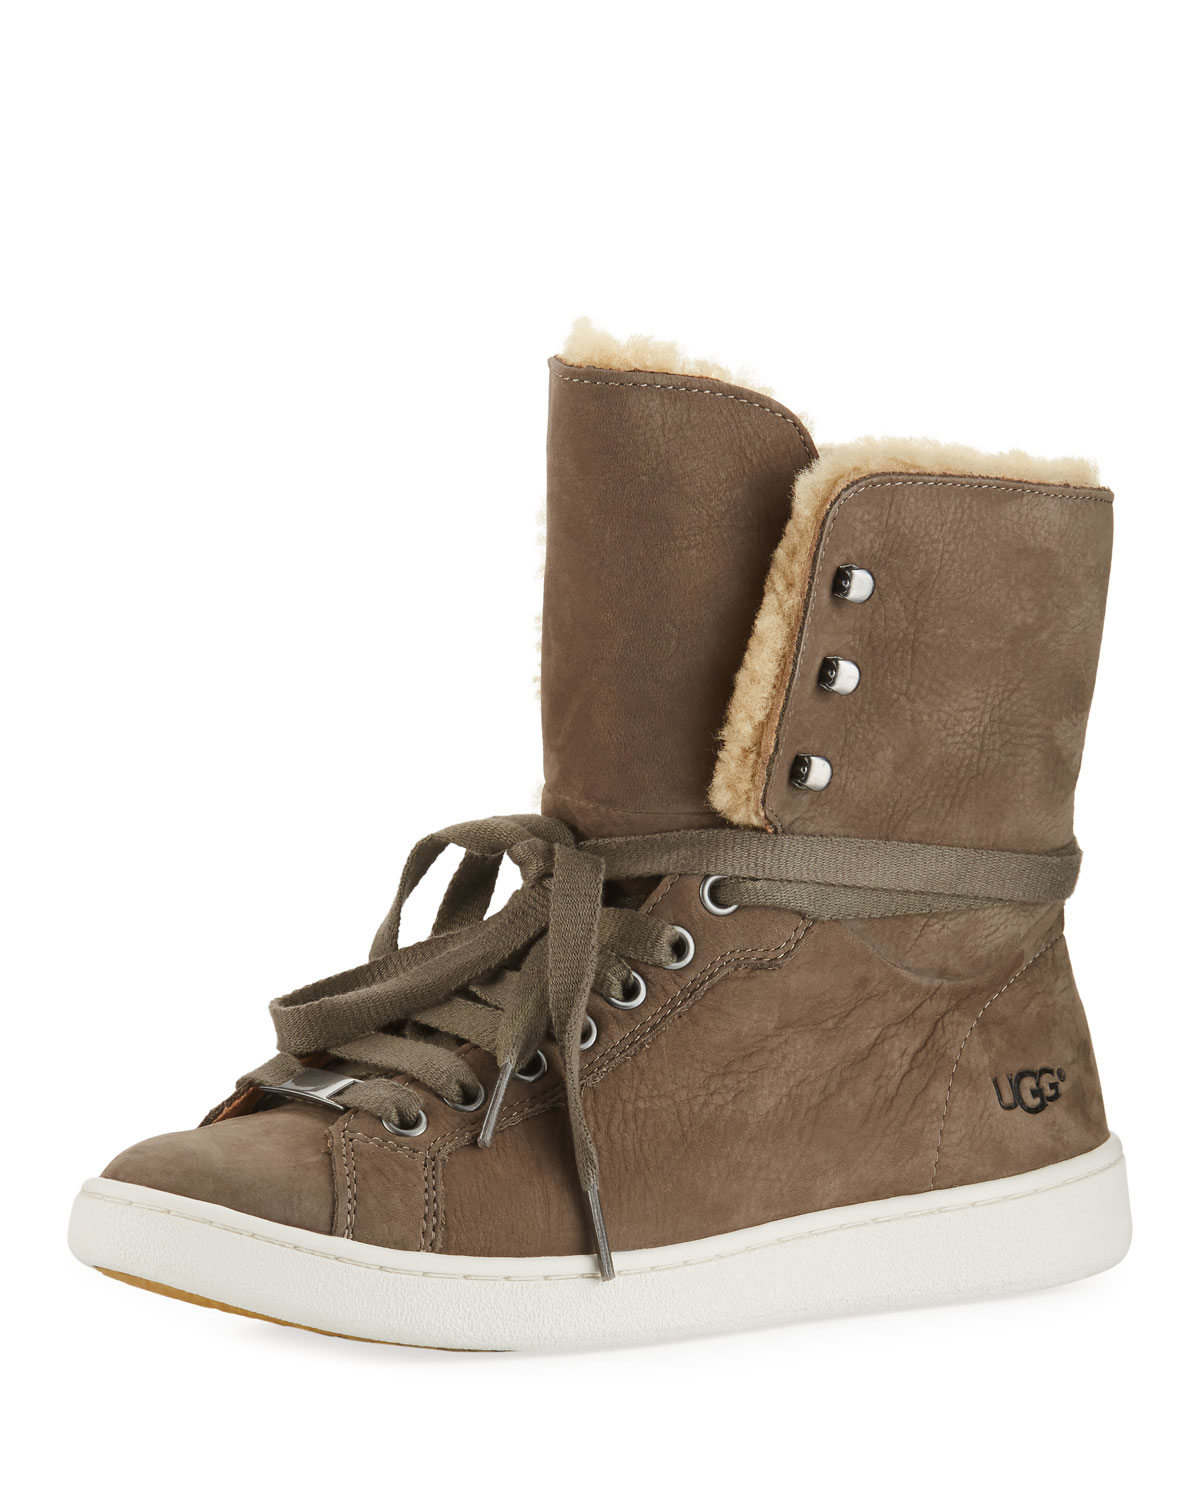 UGG Starlyn Leather & Shearling High-Top Sneakers hY93nwS